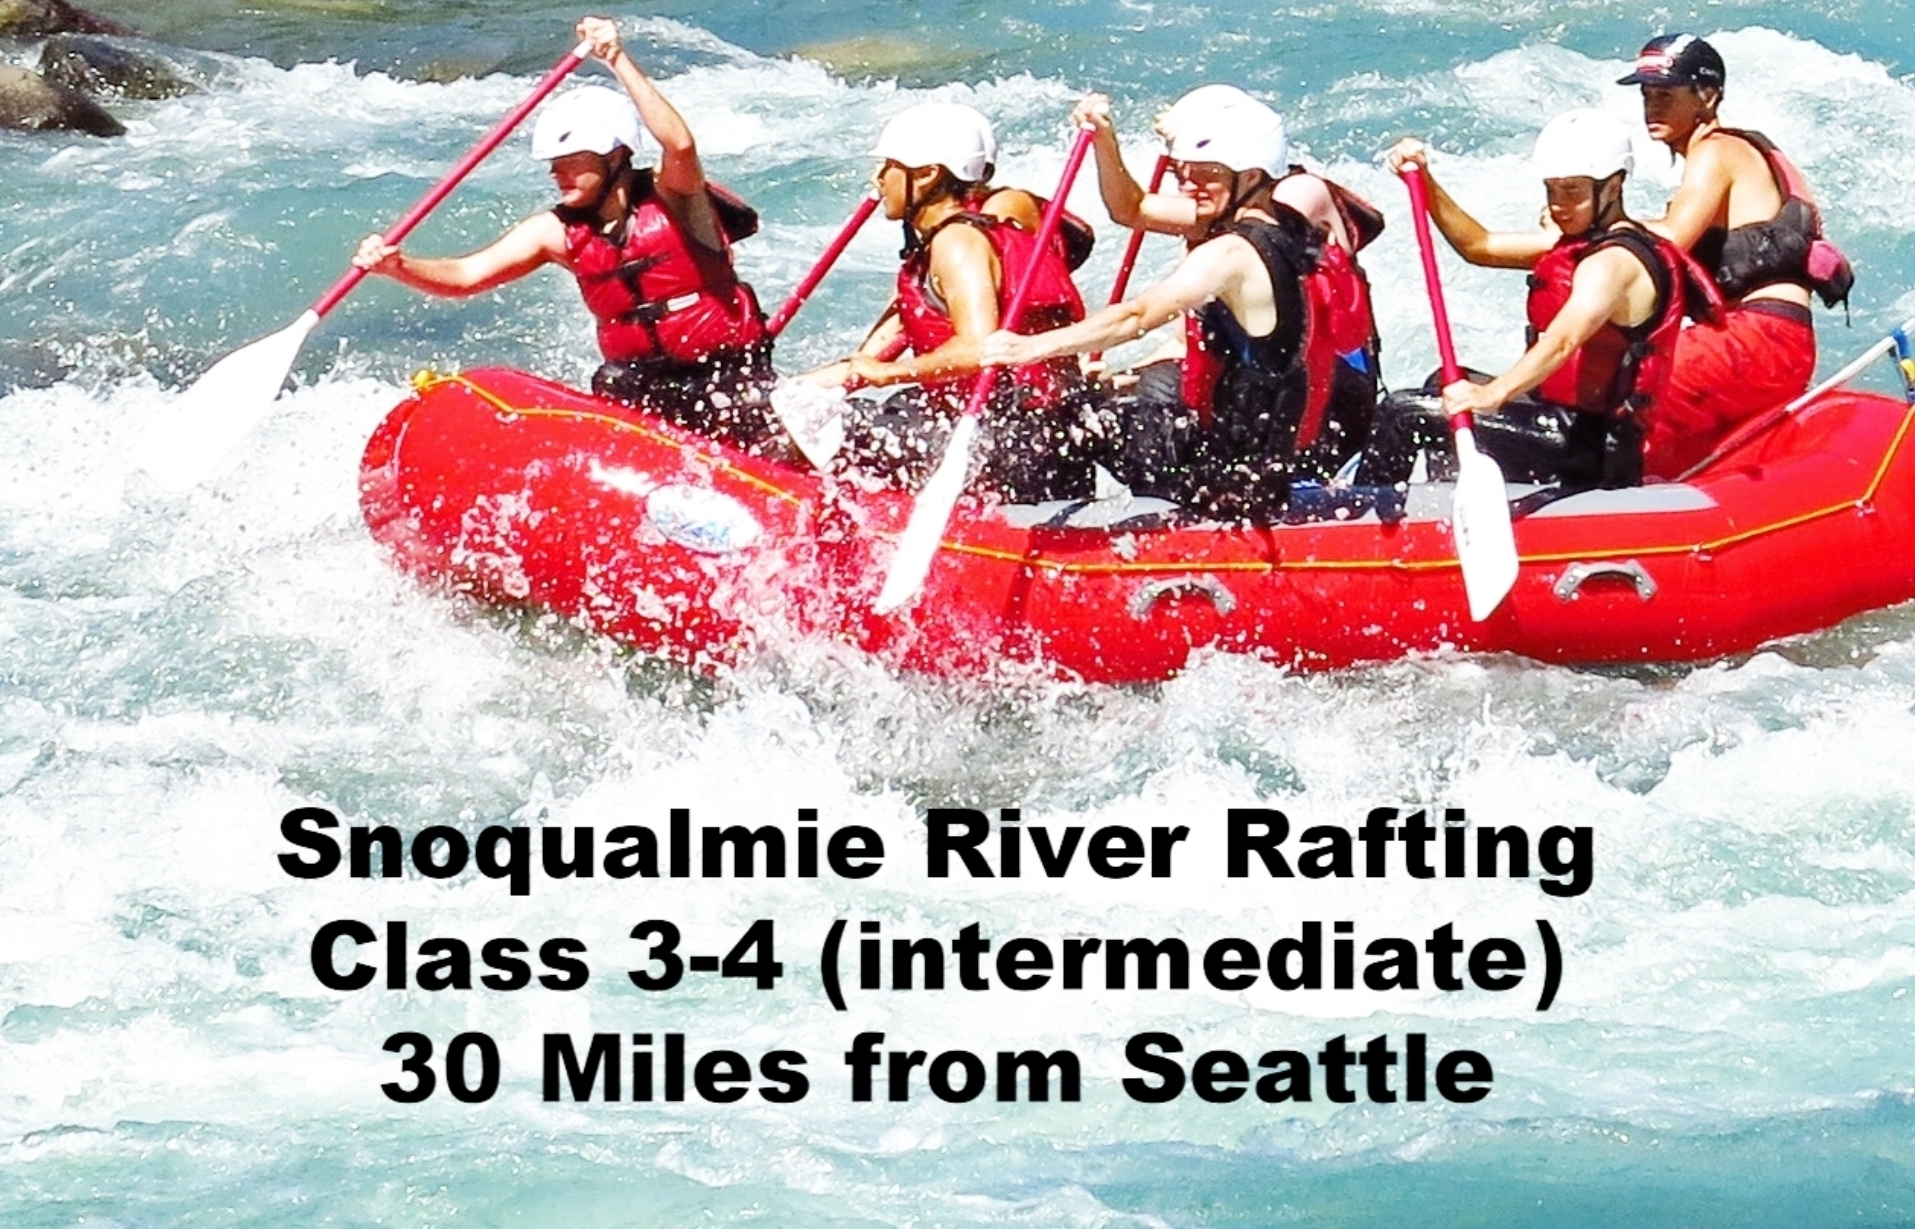 whitewater rafting seattle triad river tours.jpg